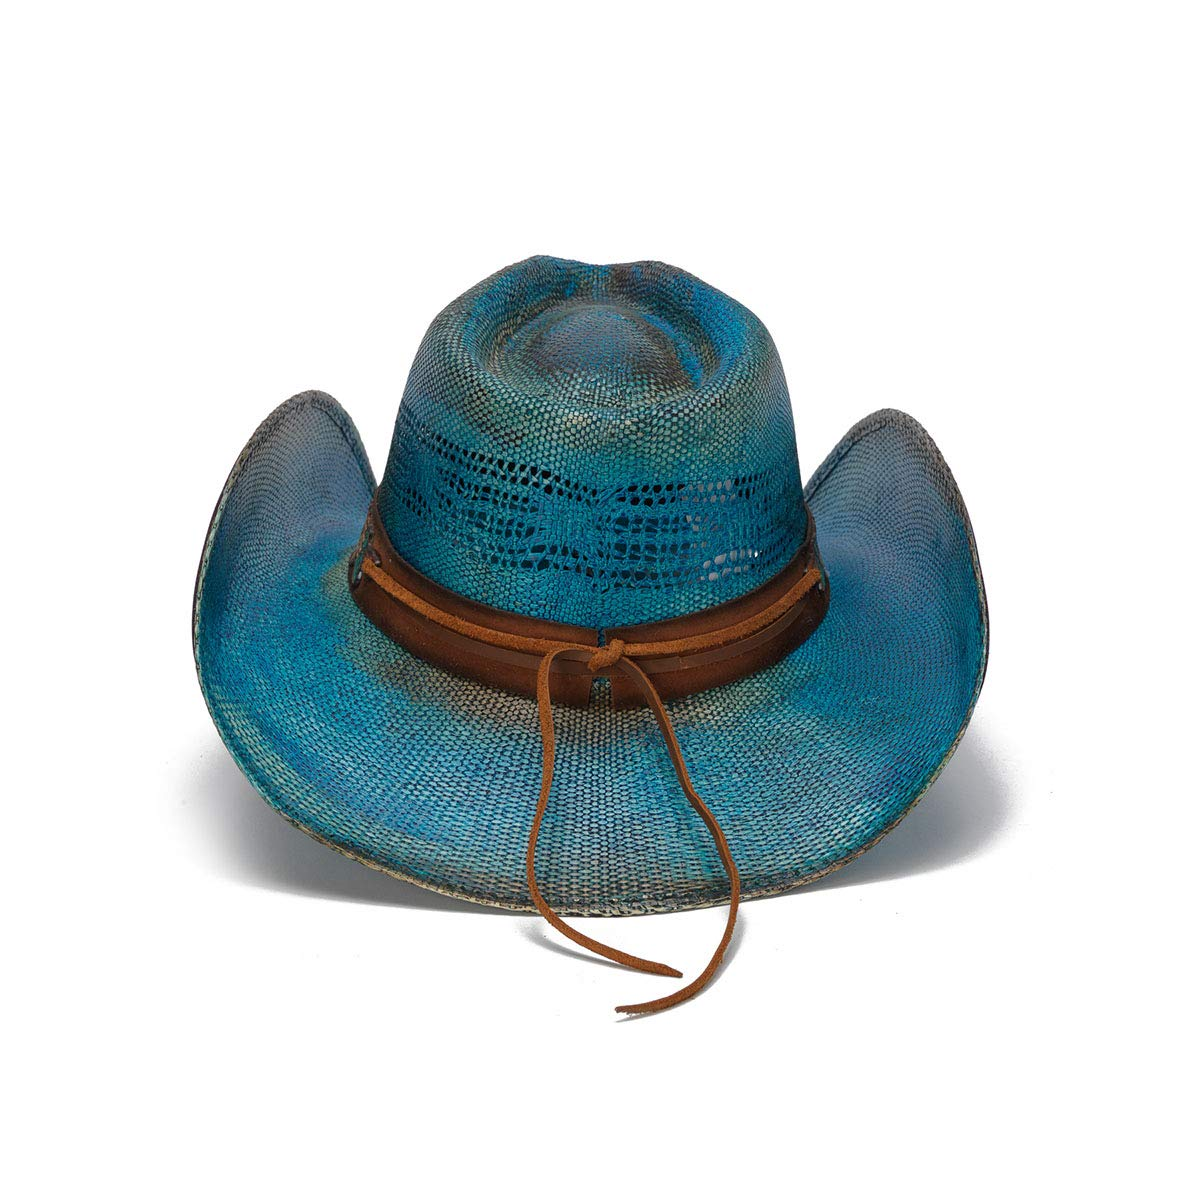 Stampede Hats Women's Love Story Rose Straw Western Hat M Blue by Stampede Hats (Image #4)